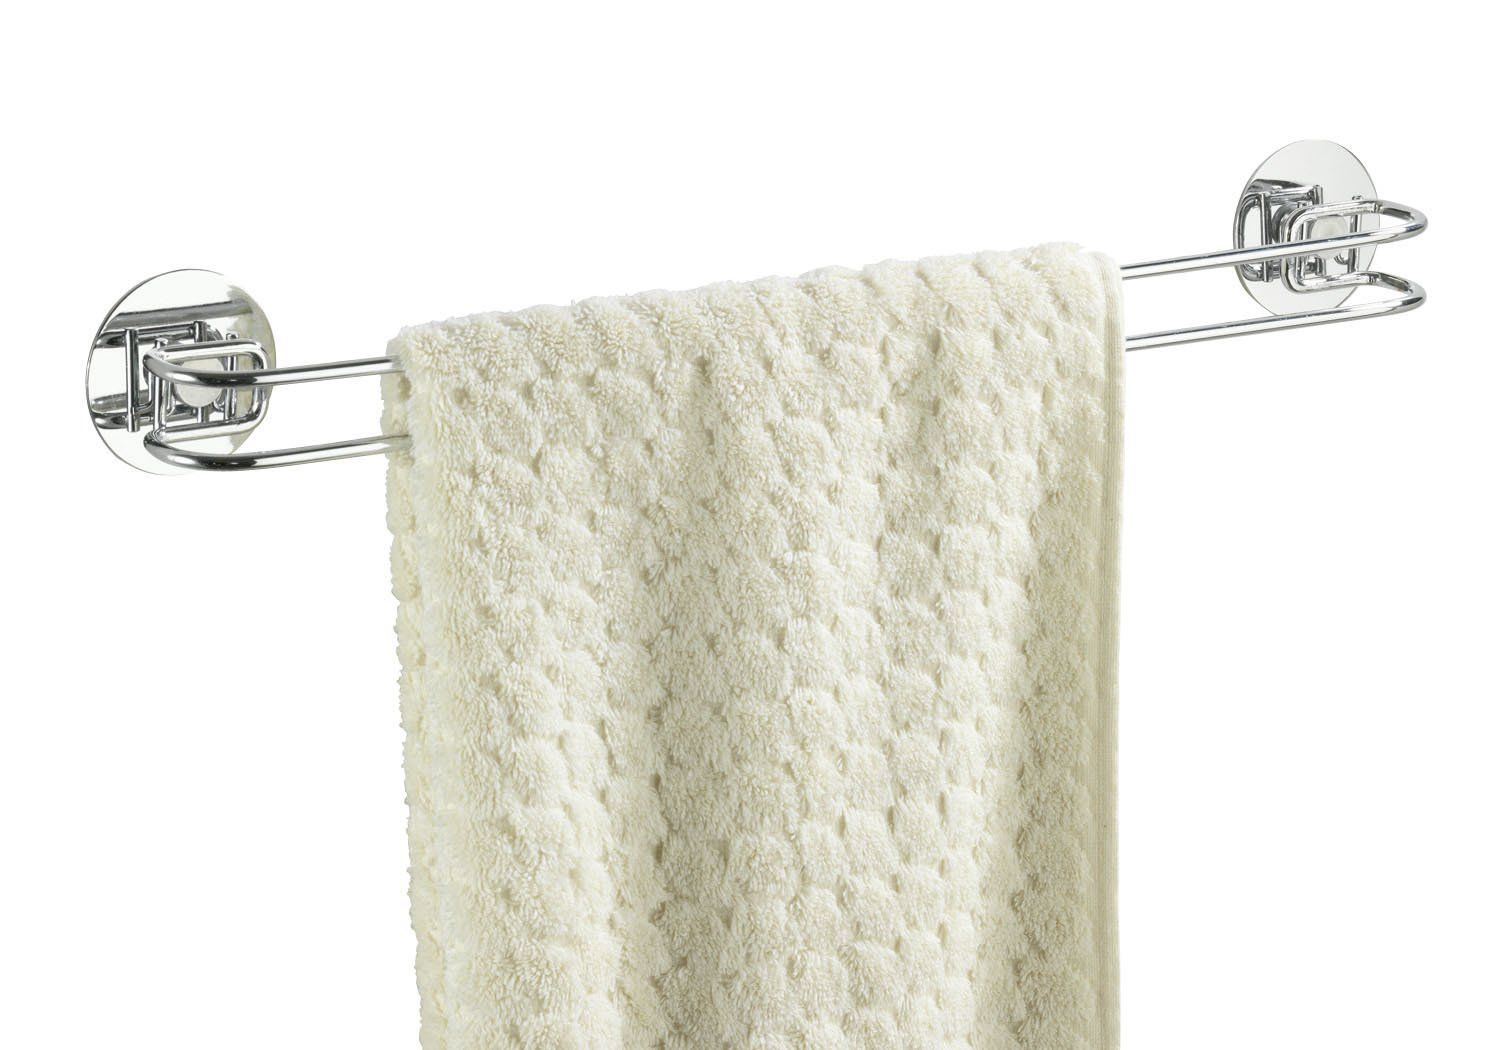 WENKO 18769100 Turbo-Loc shower towel rail - fixing without drilling, Steel, 46 x 6 x 5 cm, Chrome